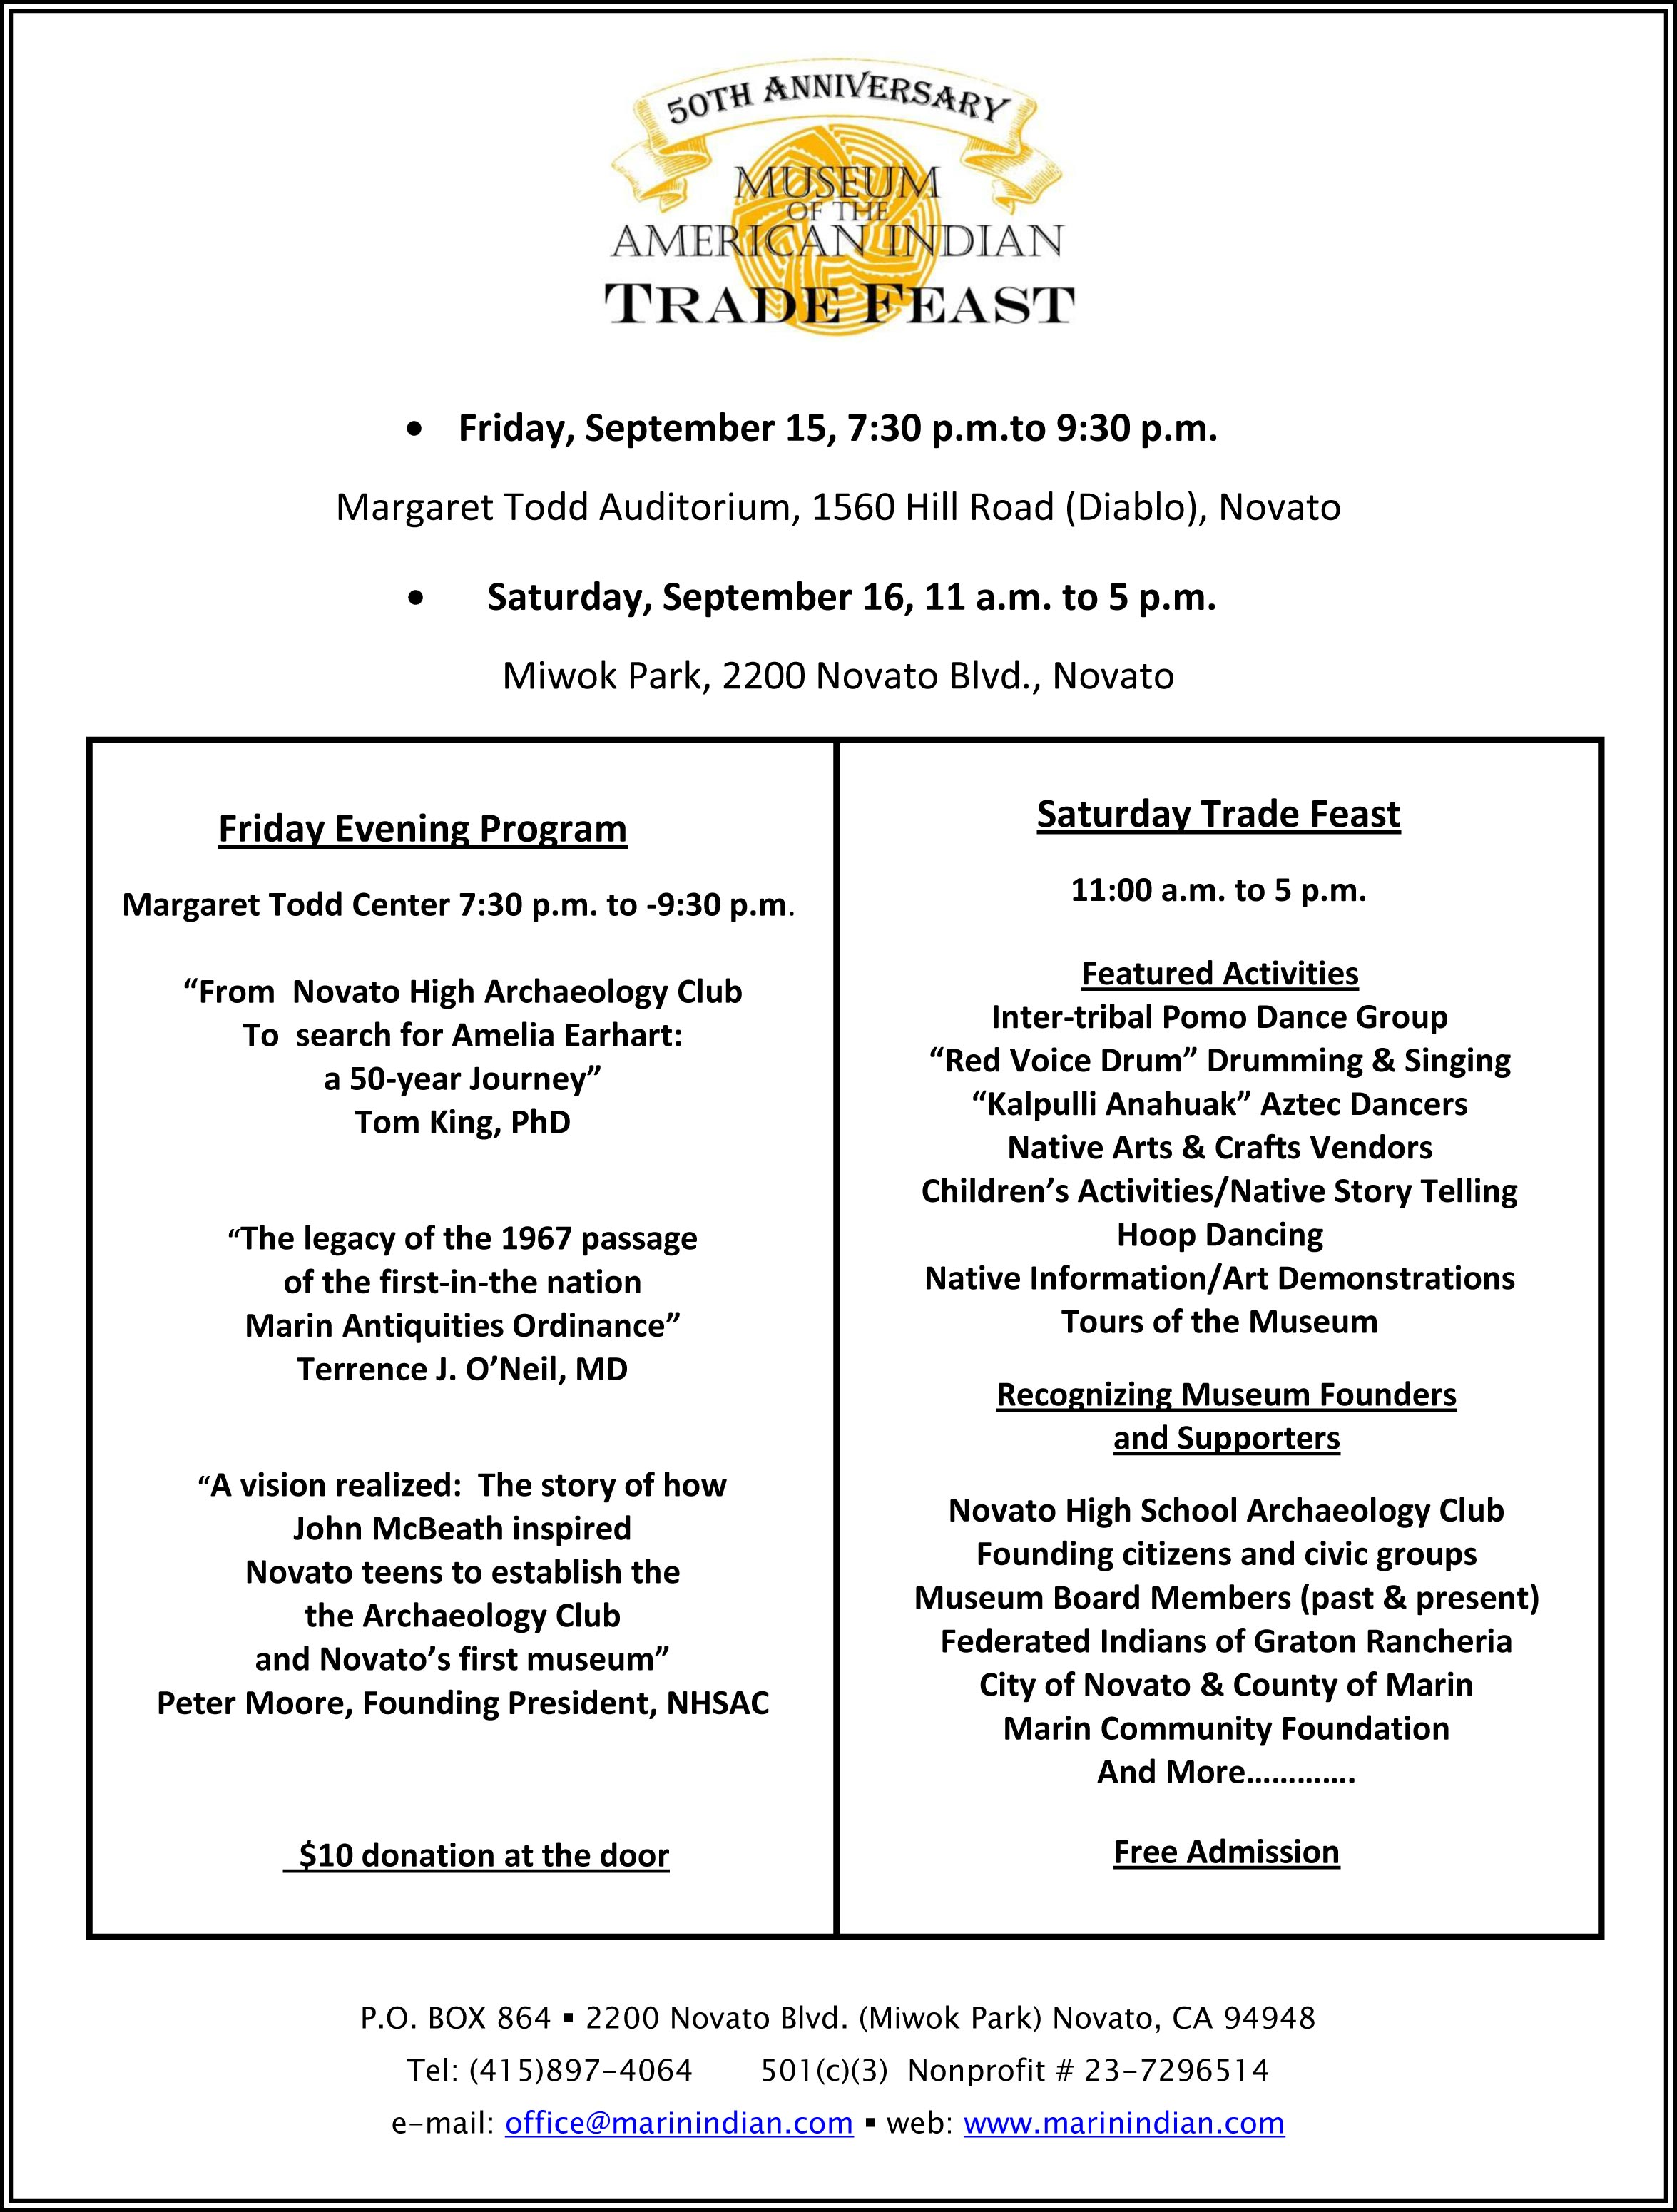 Trade Feast Flyer-Museum of the American Indian